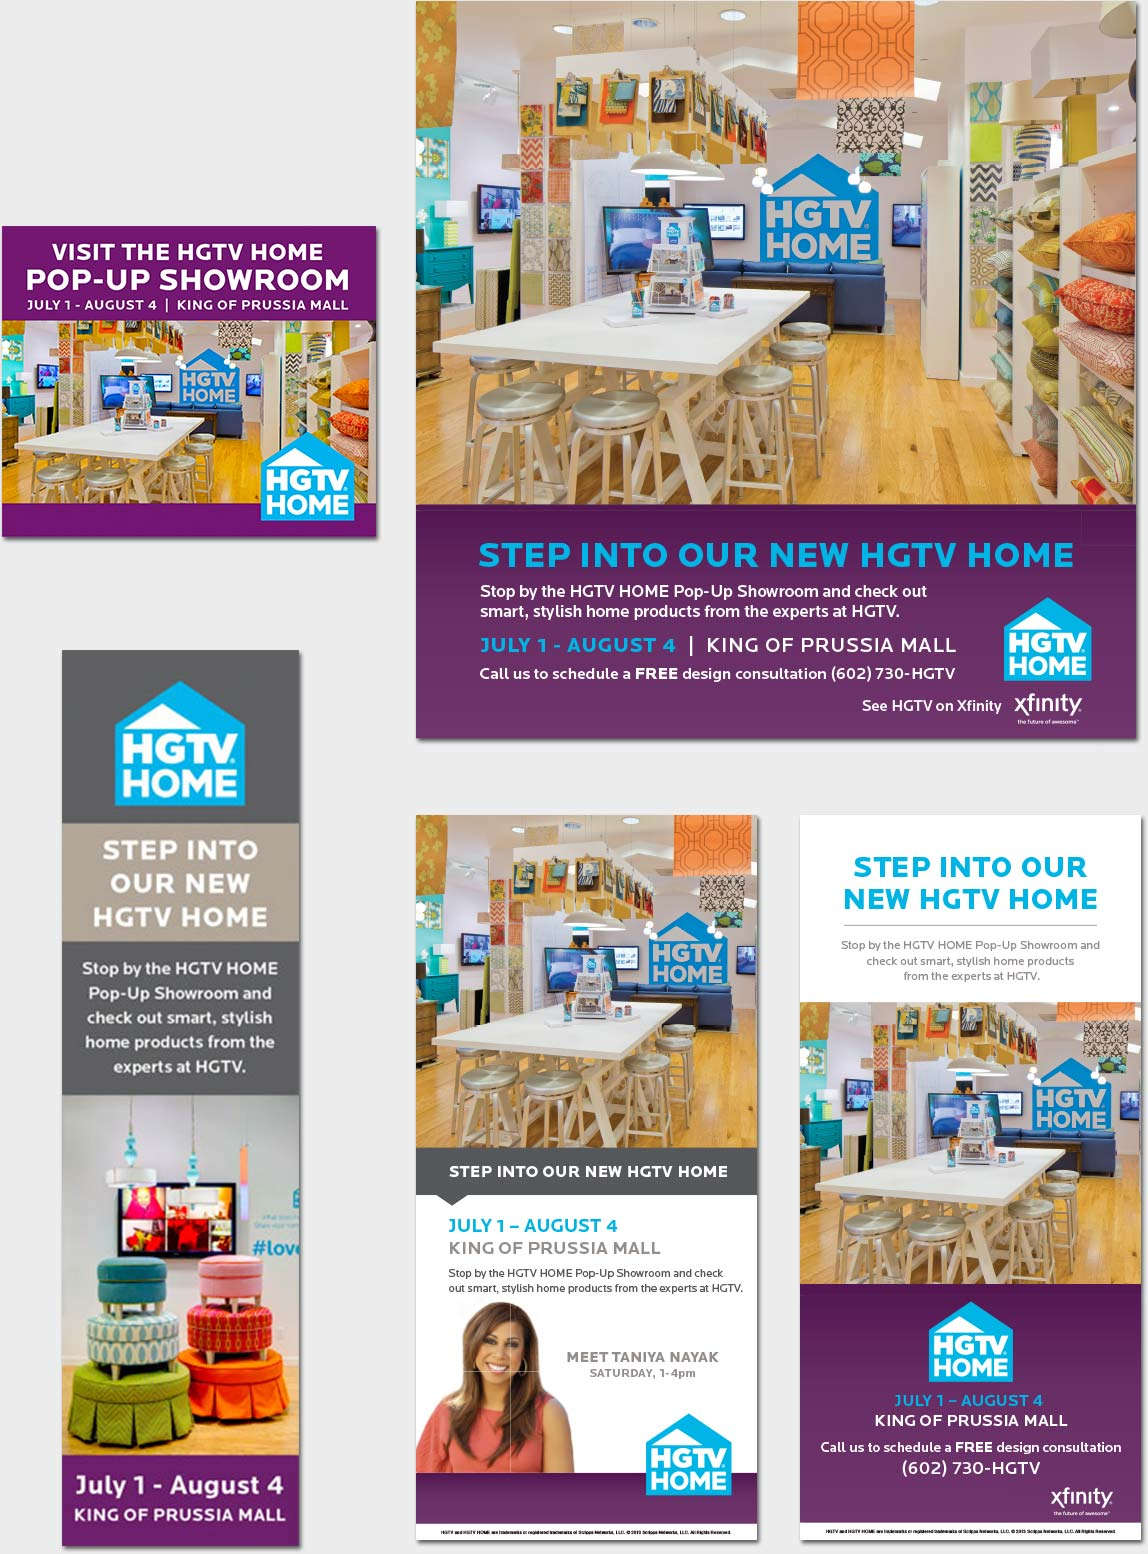 Print and banner ads for pop-up shops